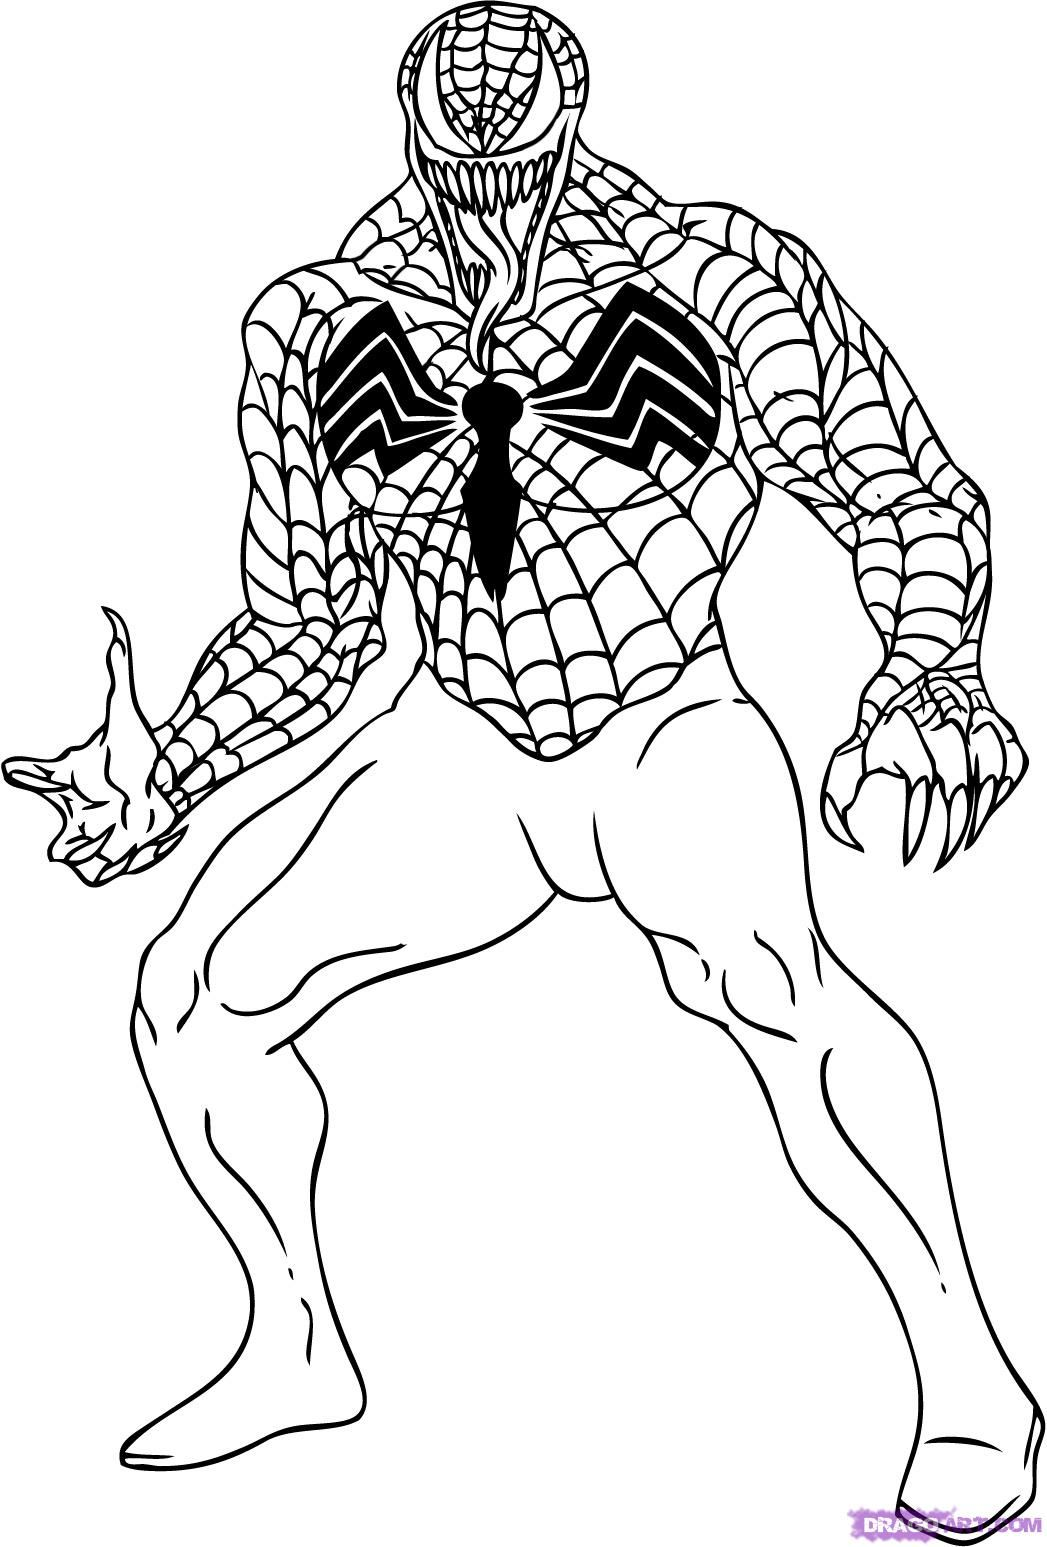 Venom Coloring Pages